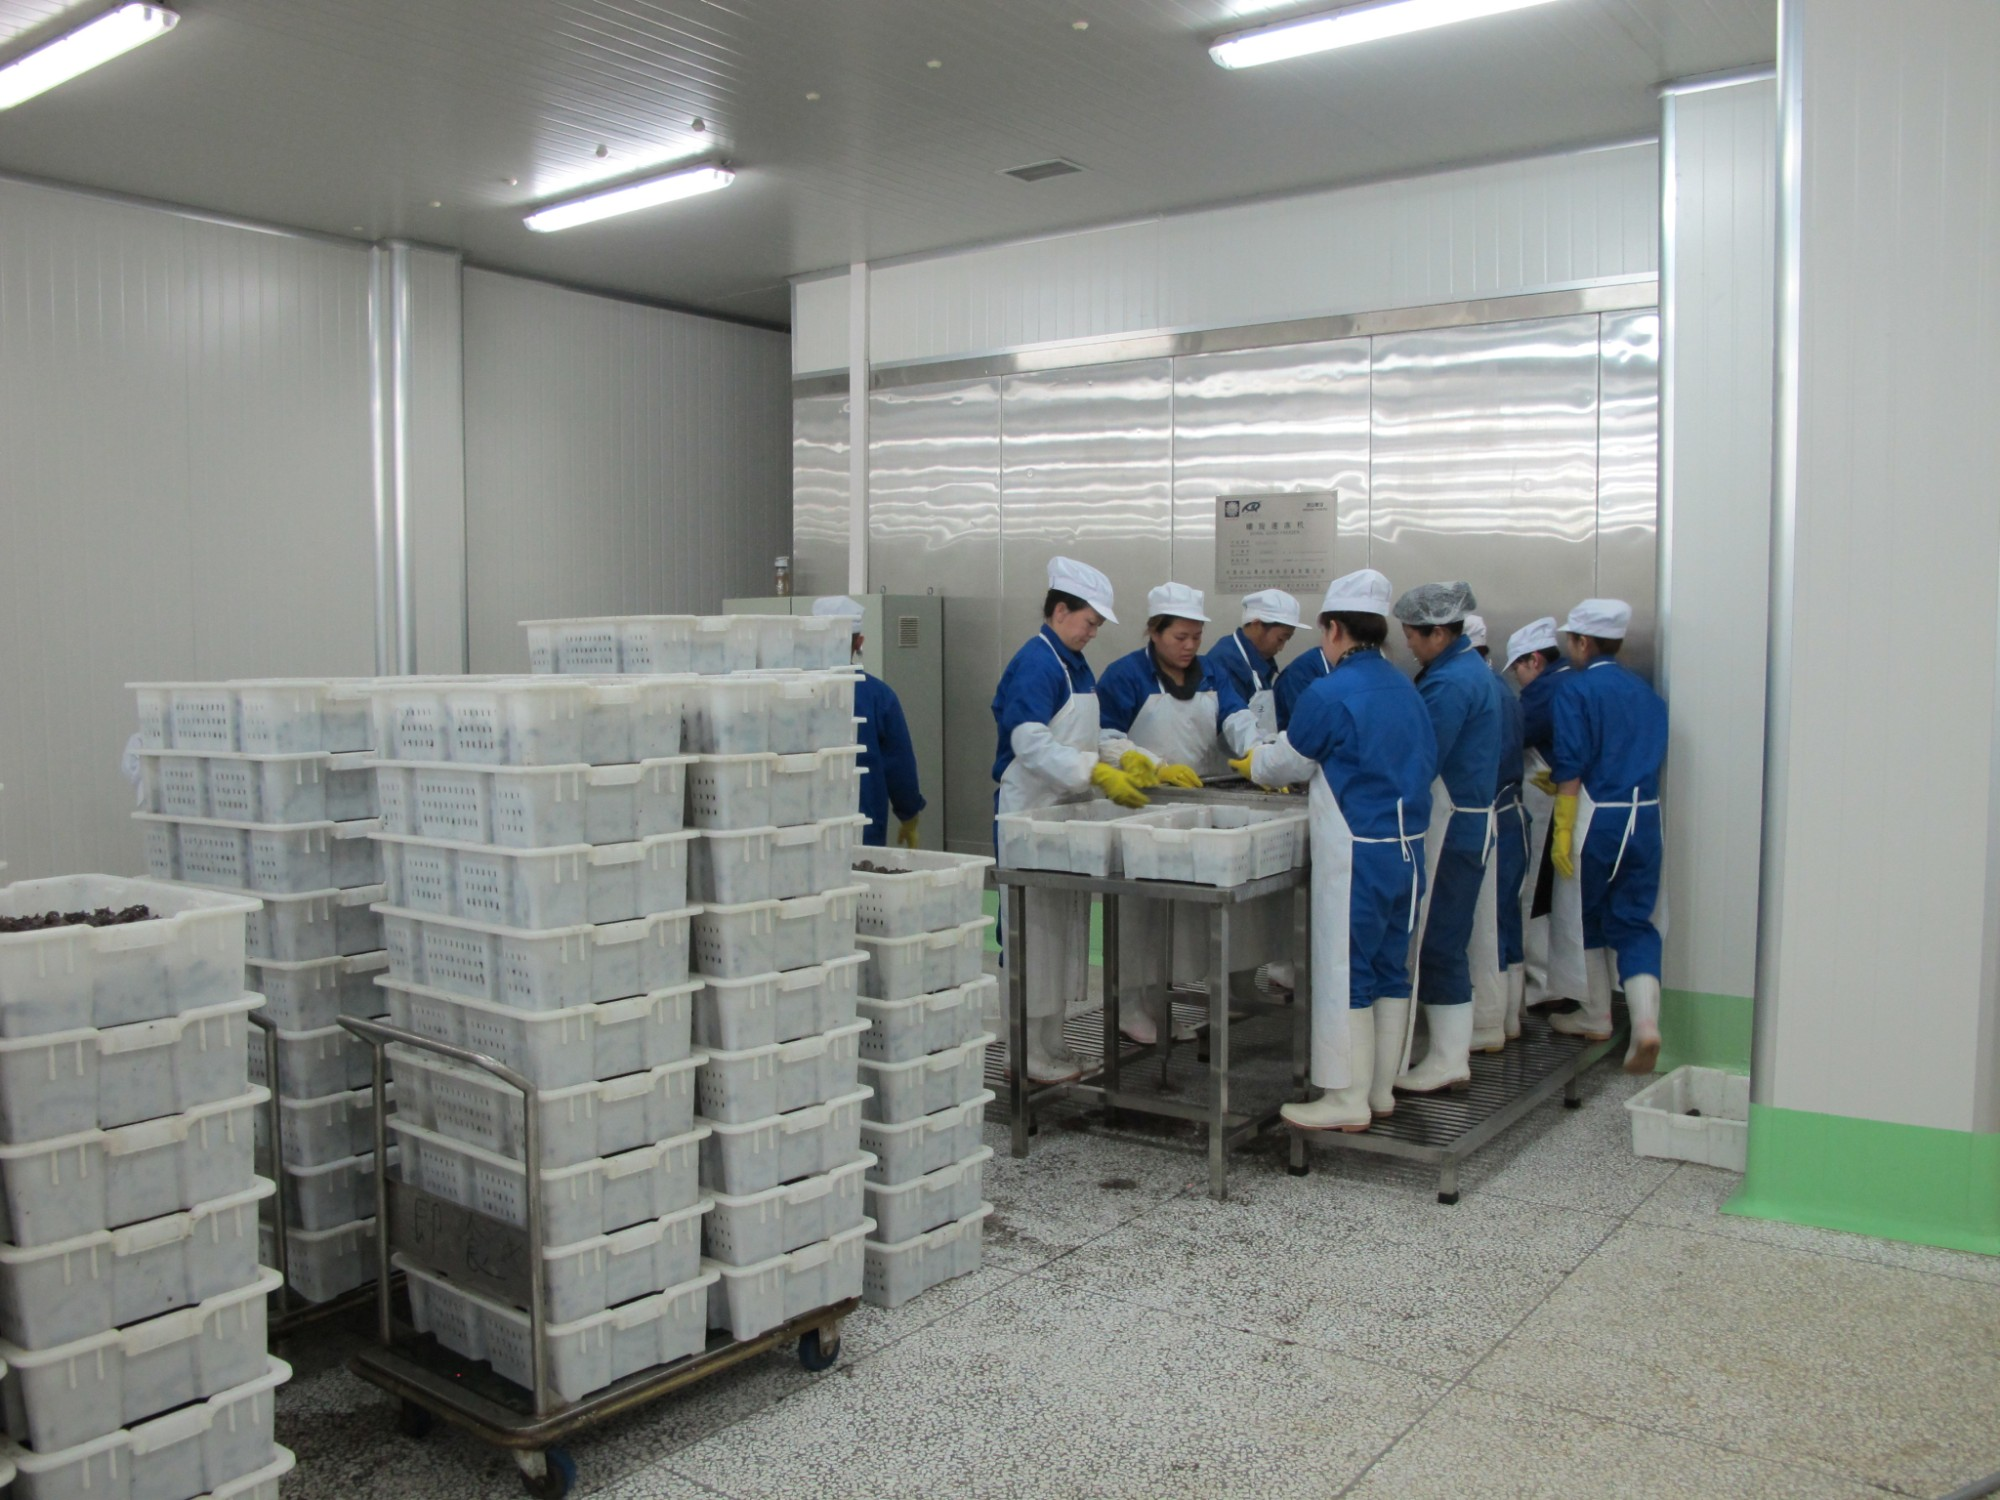 Competitive Price of Chinese BINGSHAN Spiral Freezer For Fish Fillet Manufacturers, Competitive Price of Chinese BINGSHAN Spiral Freezer For Fish Fillet Factory, Supply Competitive Price of Chinese BINGSHAN Spiral Freezer For Fish Fillet